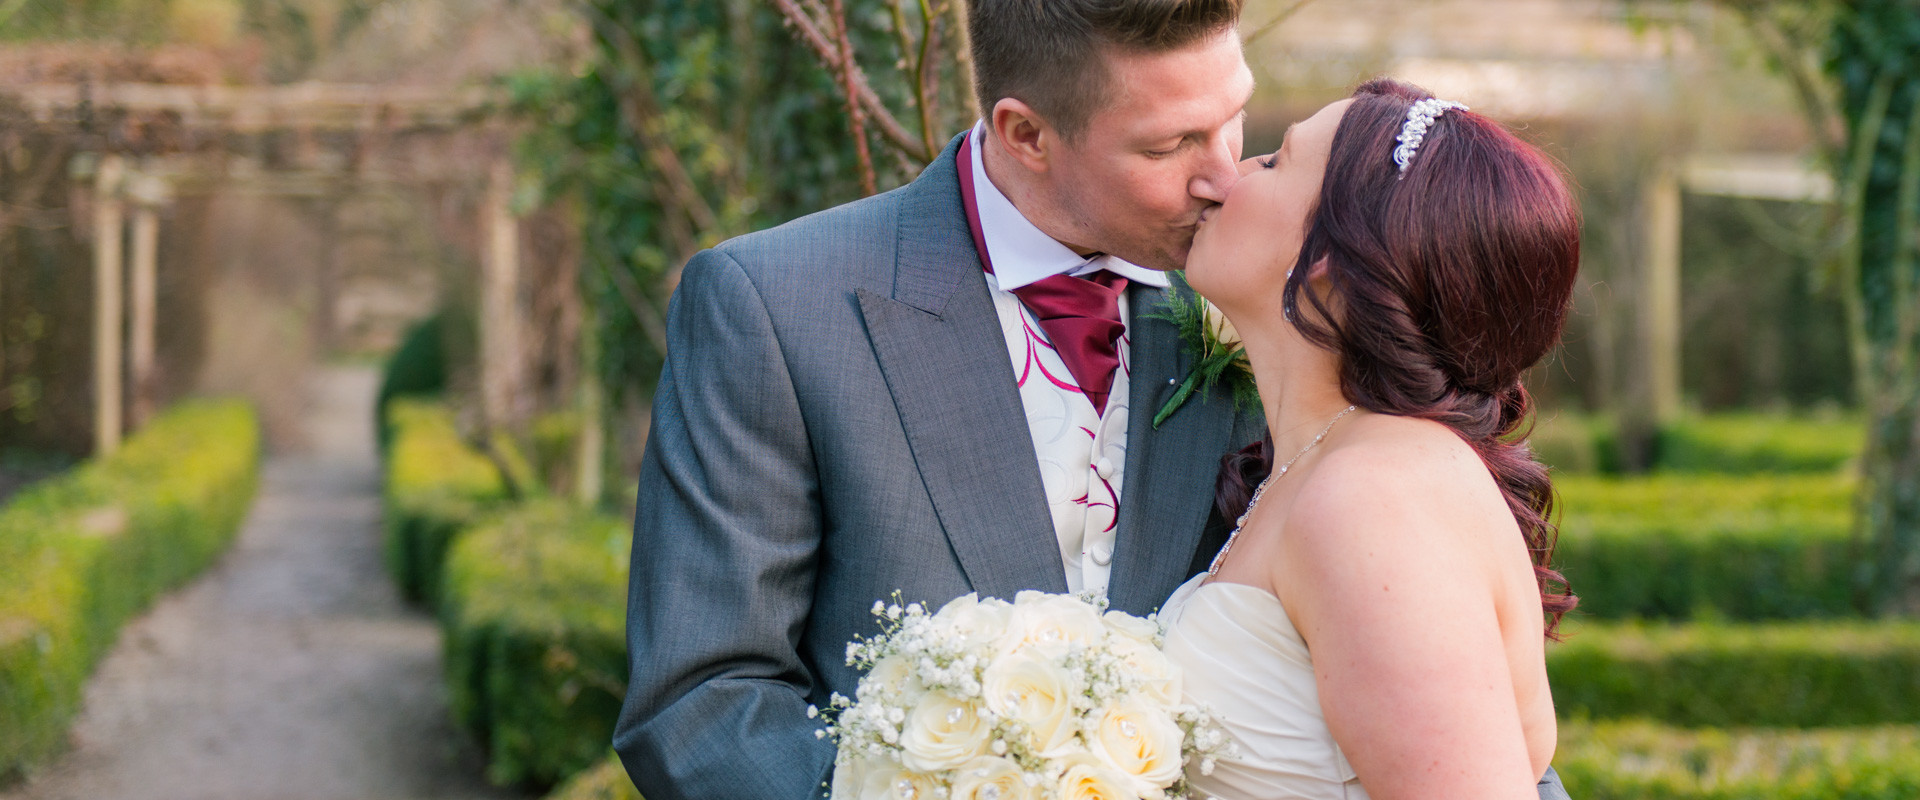 Ripley Castle Wedding - Bride and Groom kissing in the garden